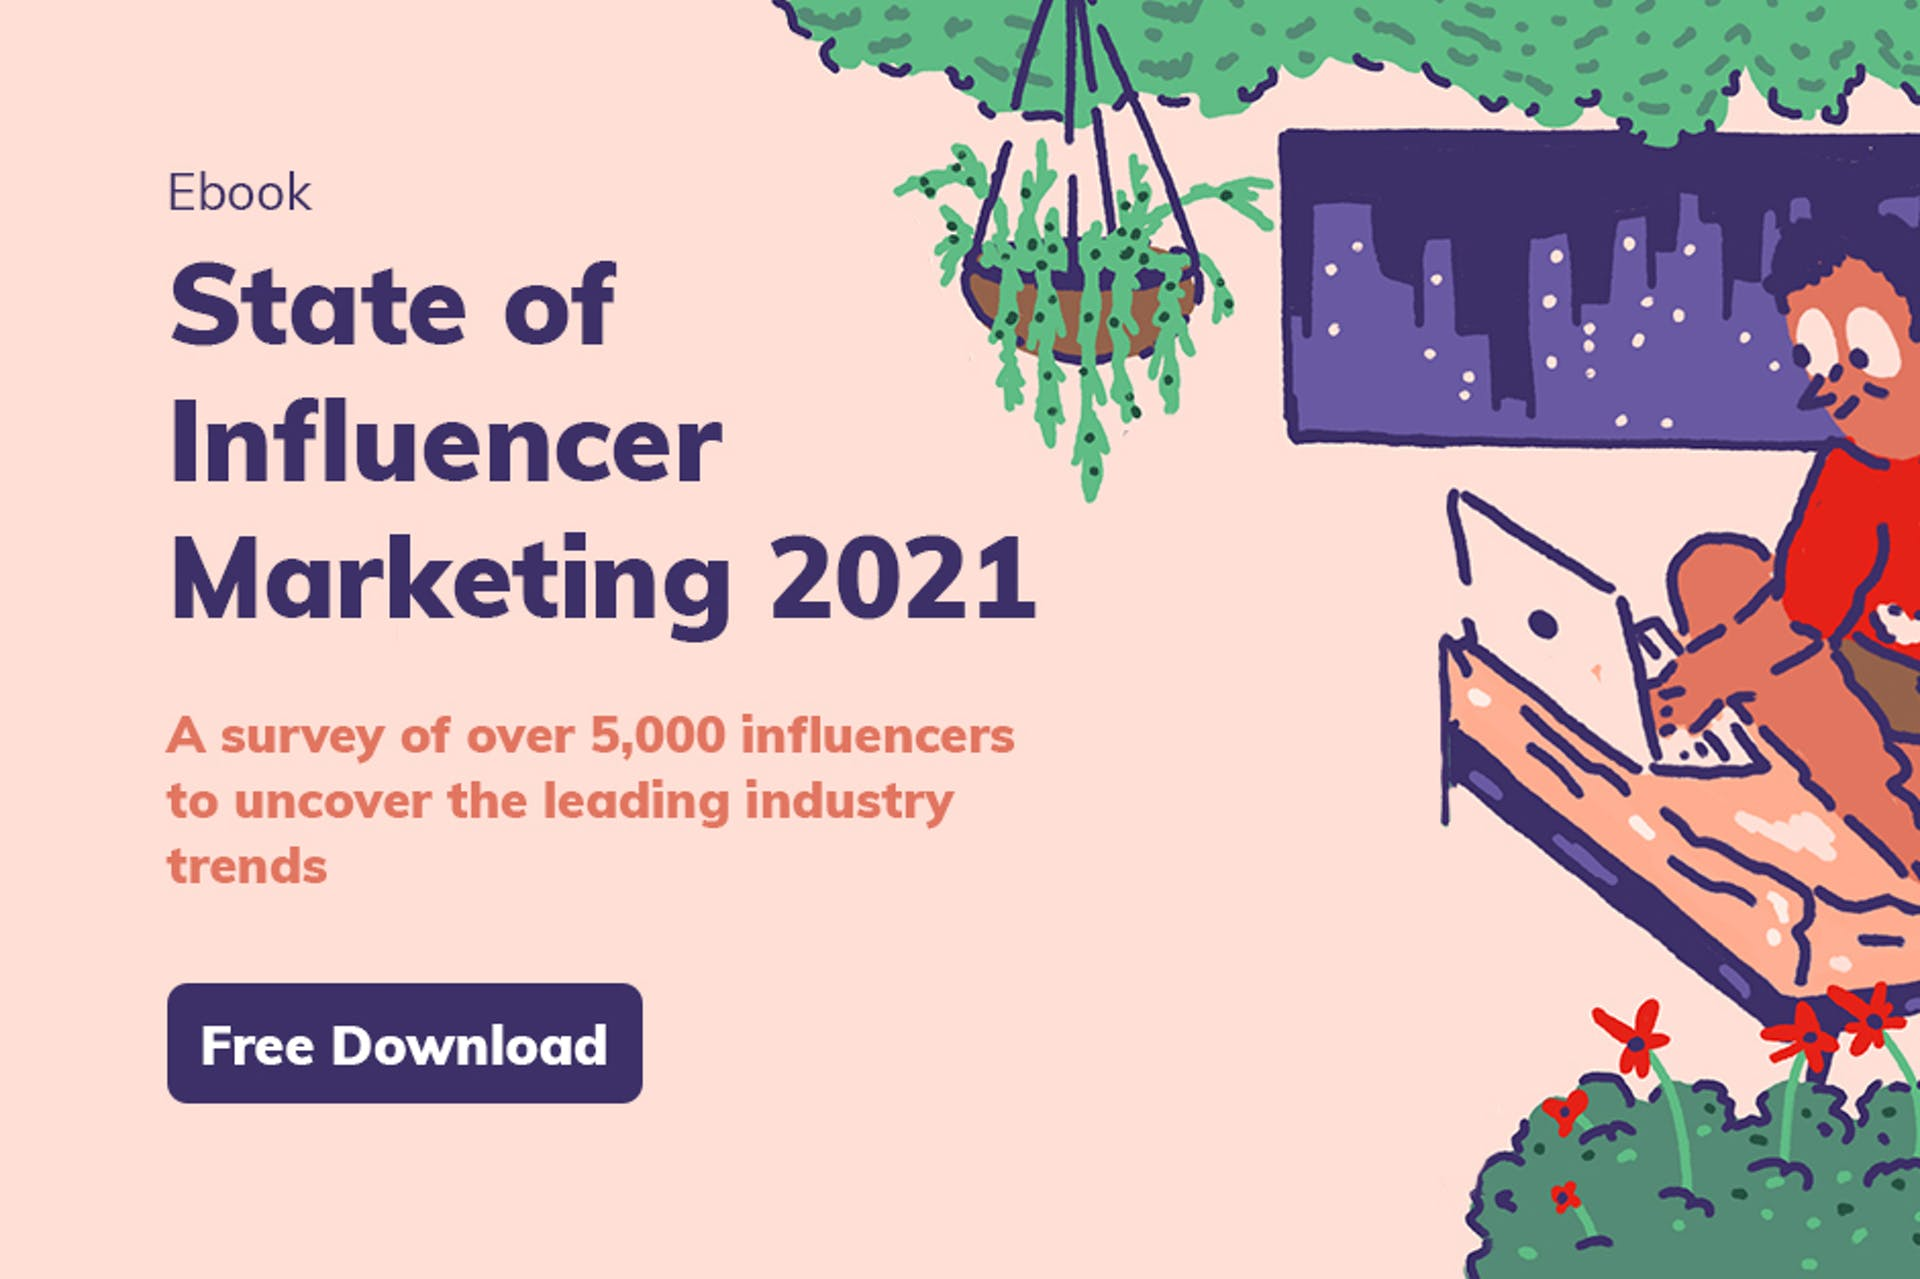 Ebook cover for the state of influencer marketing 2021 report